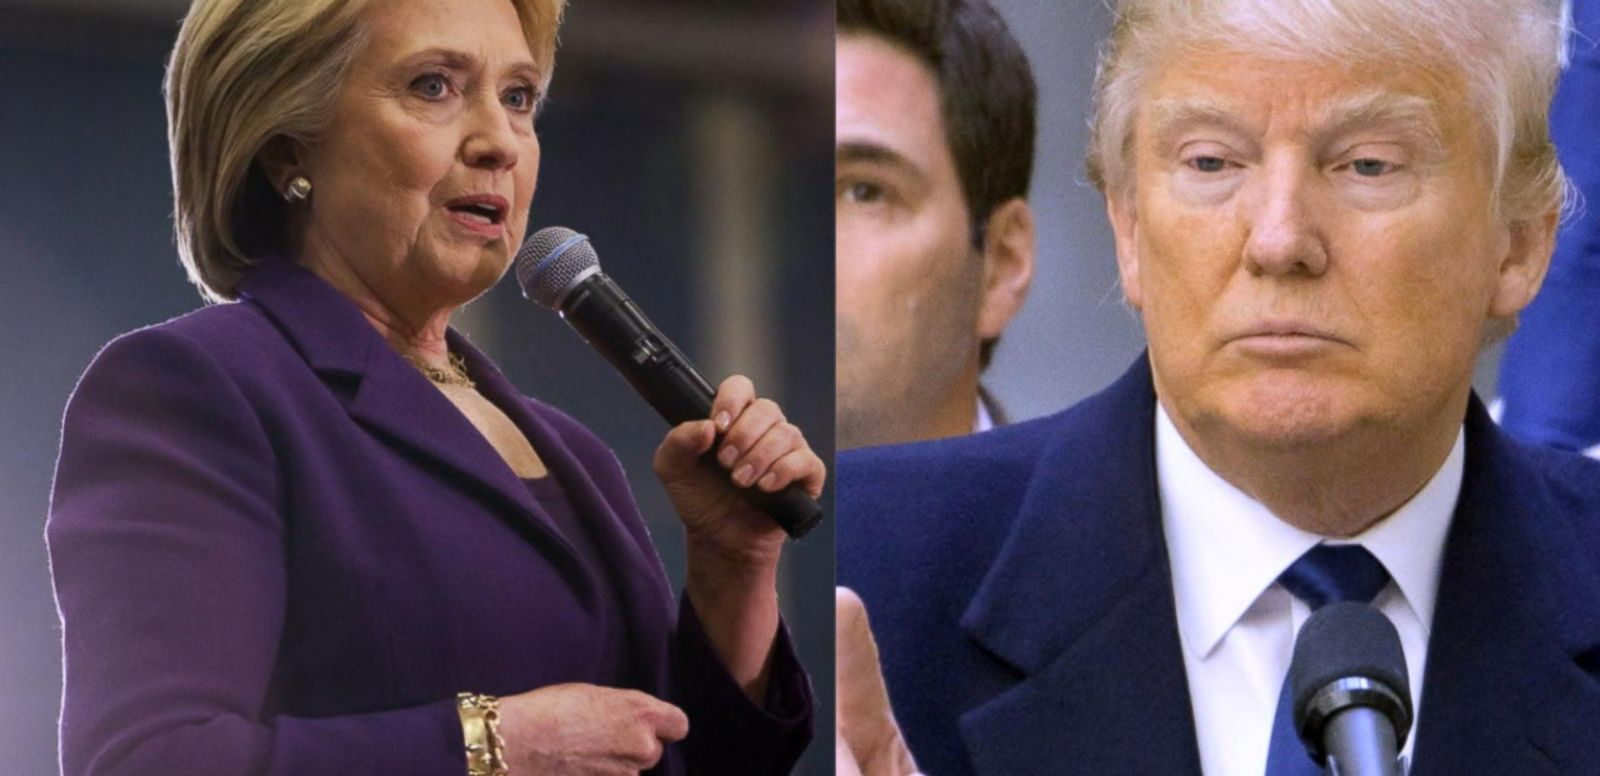 VIDEO: Hillary Clinton Says Donald Trump is 'Loose Cannon'